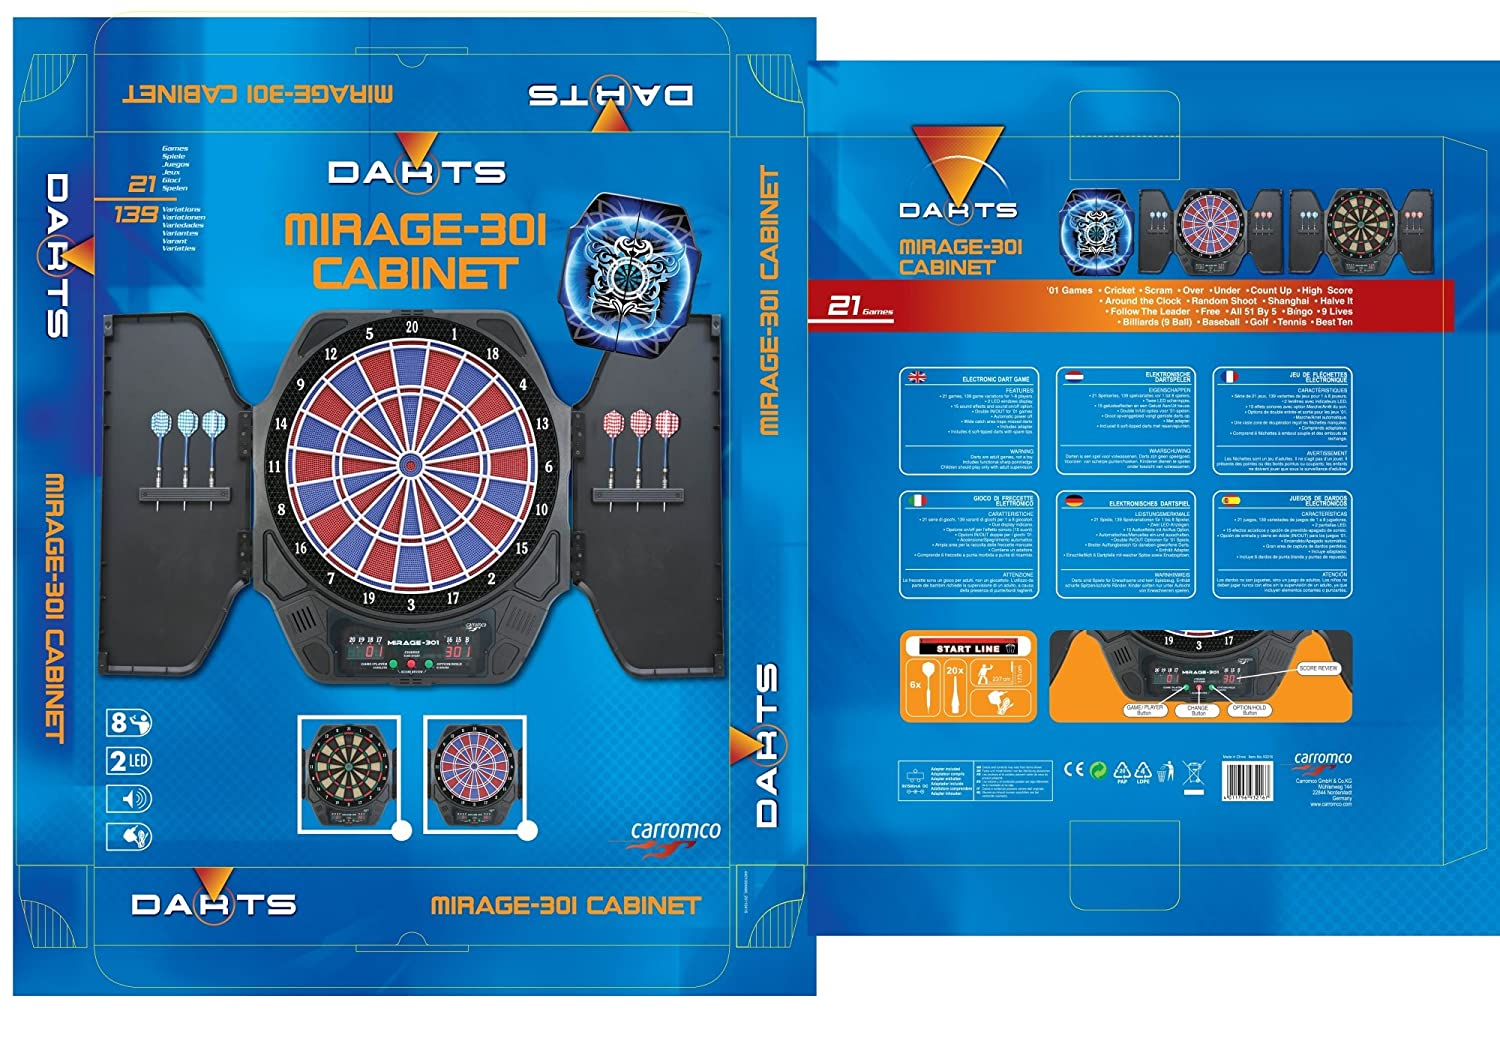 Carromco Mirage 301 Cabinett Dartboard Black Amazon Co Uk Sports